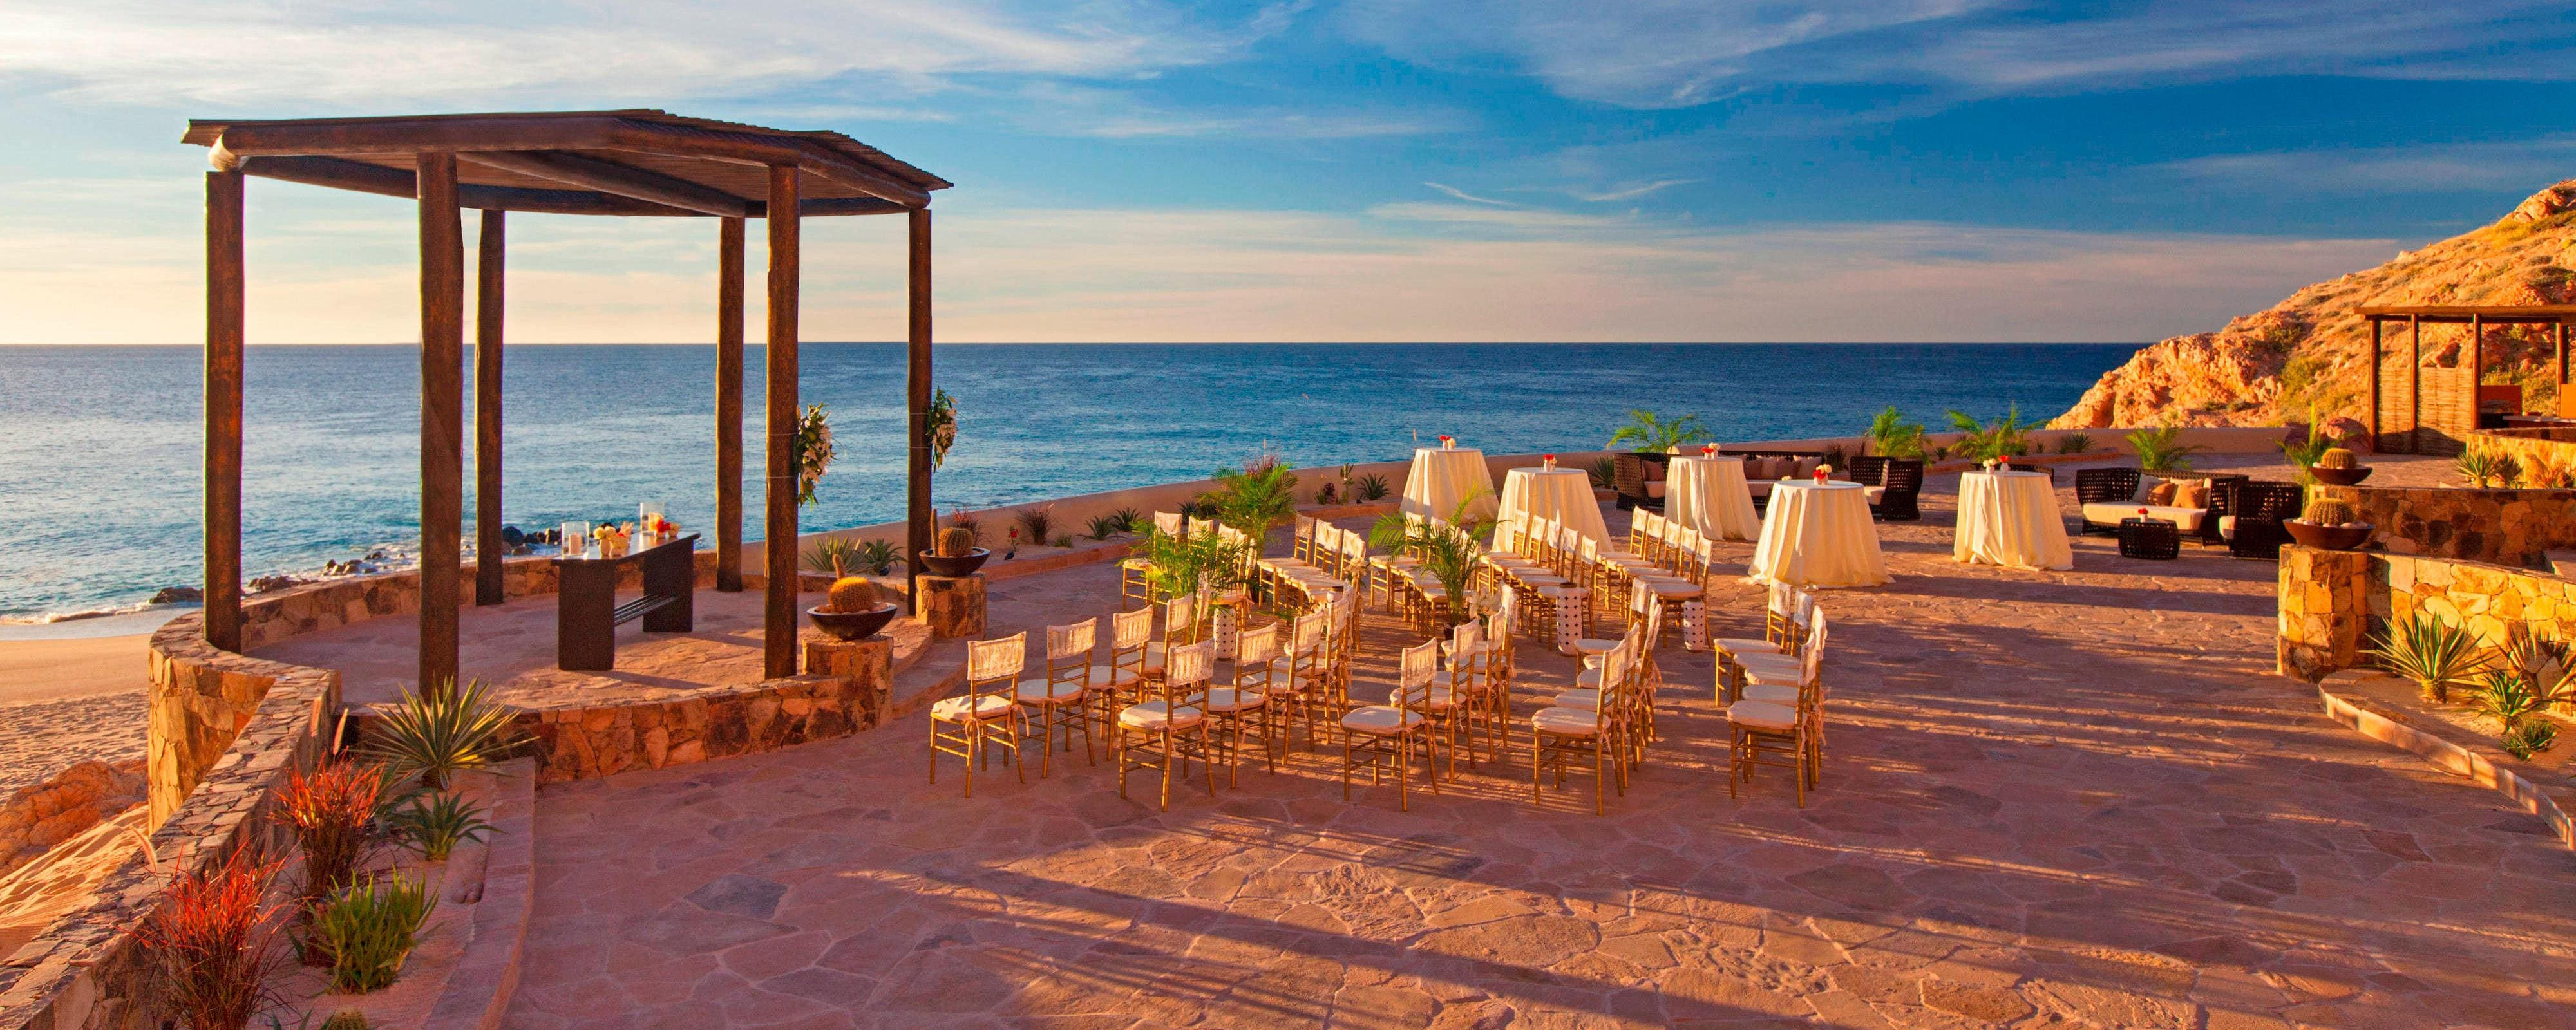 Wedding Venue Amp Hotel In Los Cabos The Westin Los Cabos Resort Villas Amp Spa